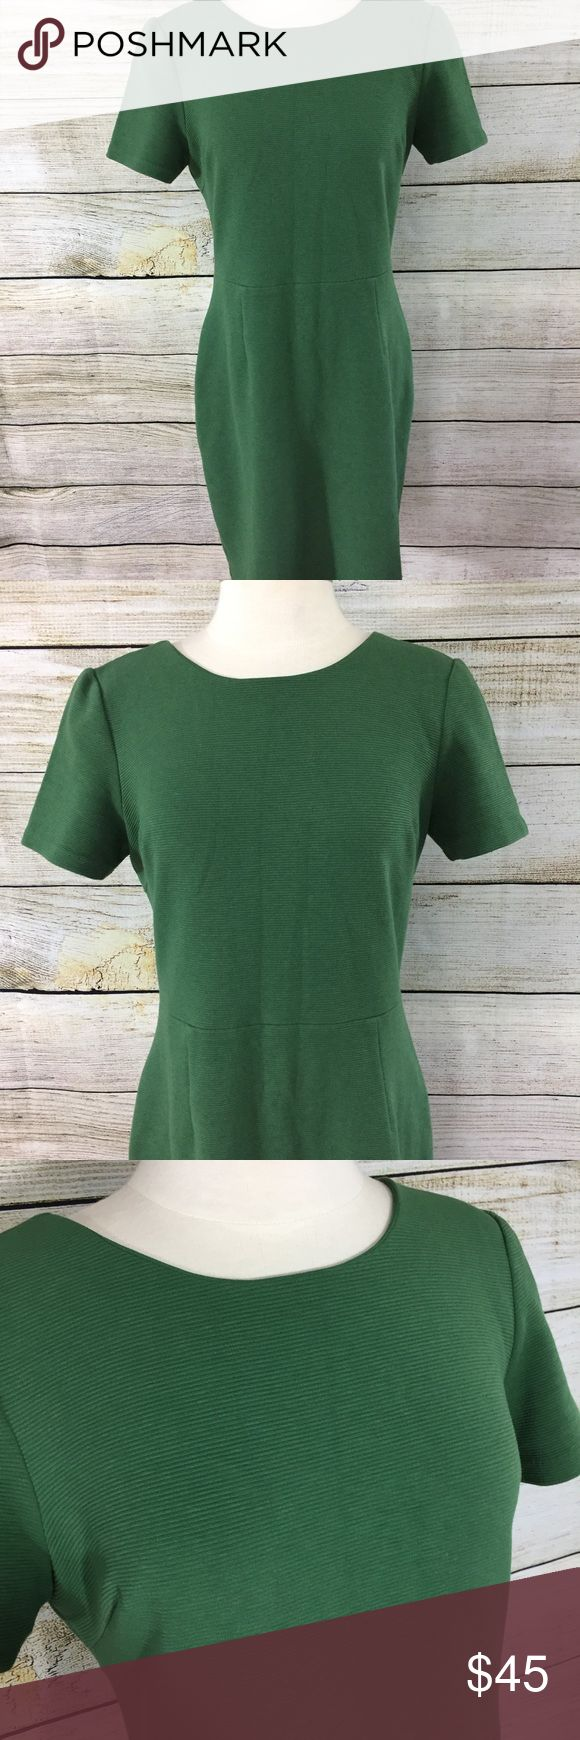 Boden Green Dress Size 10 petite. Low back. Green ribbed Knit material. Nice condition! Boden Dresses